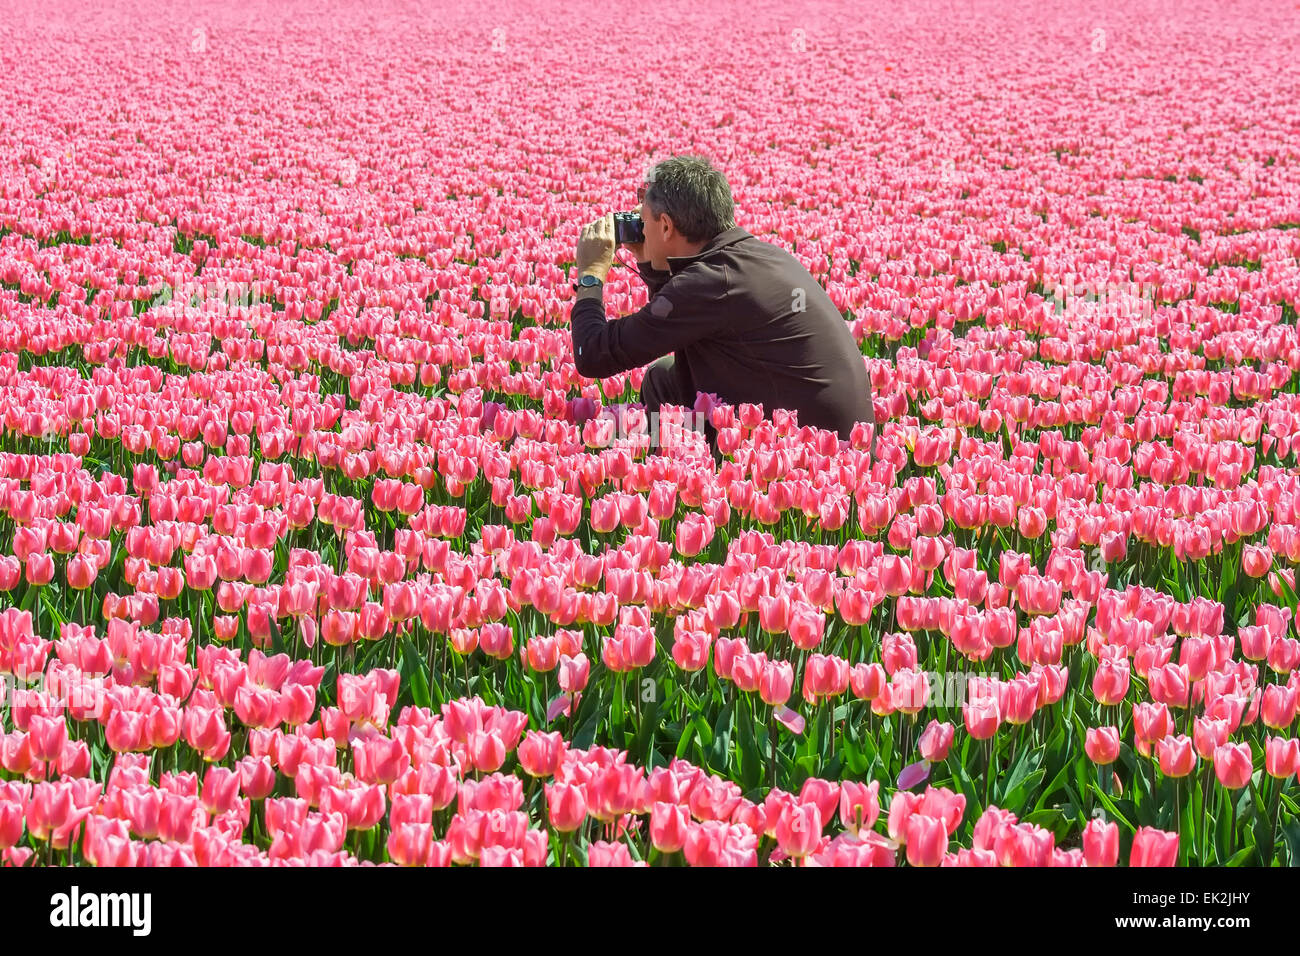 Man taking a picture in a tulip field - Stock Image